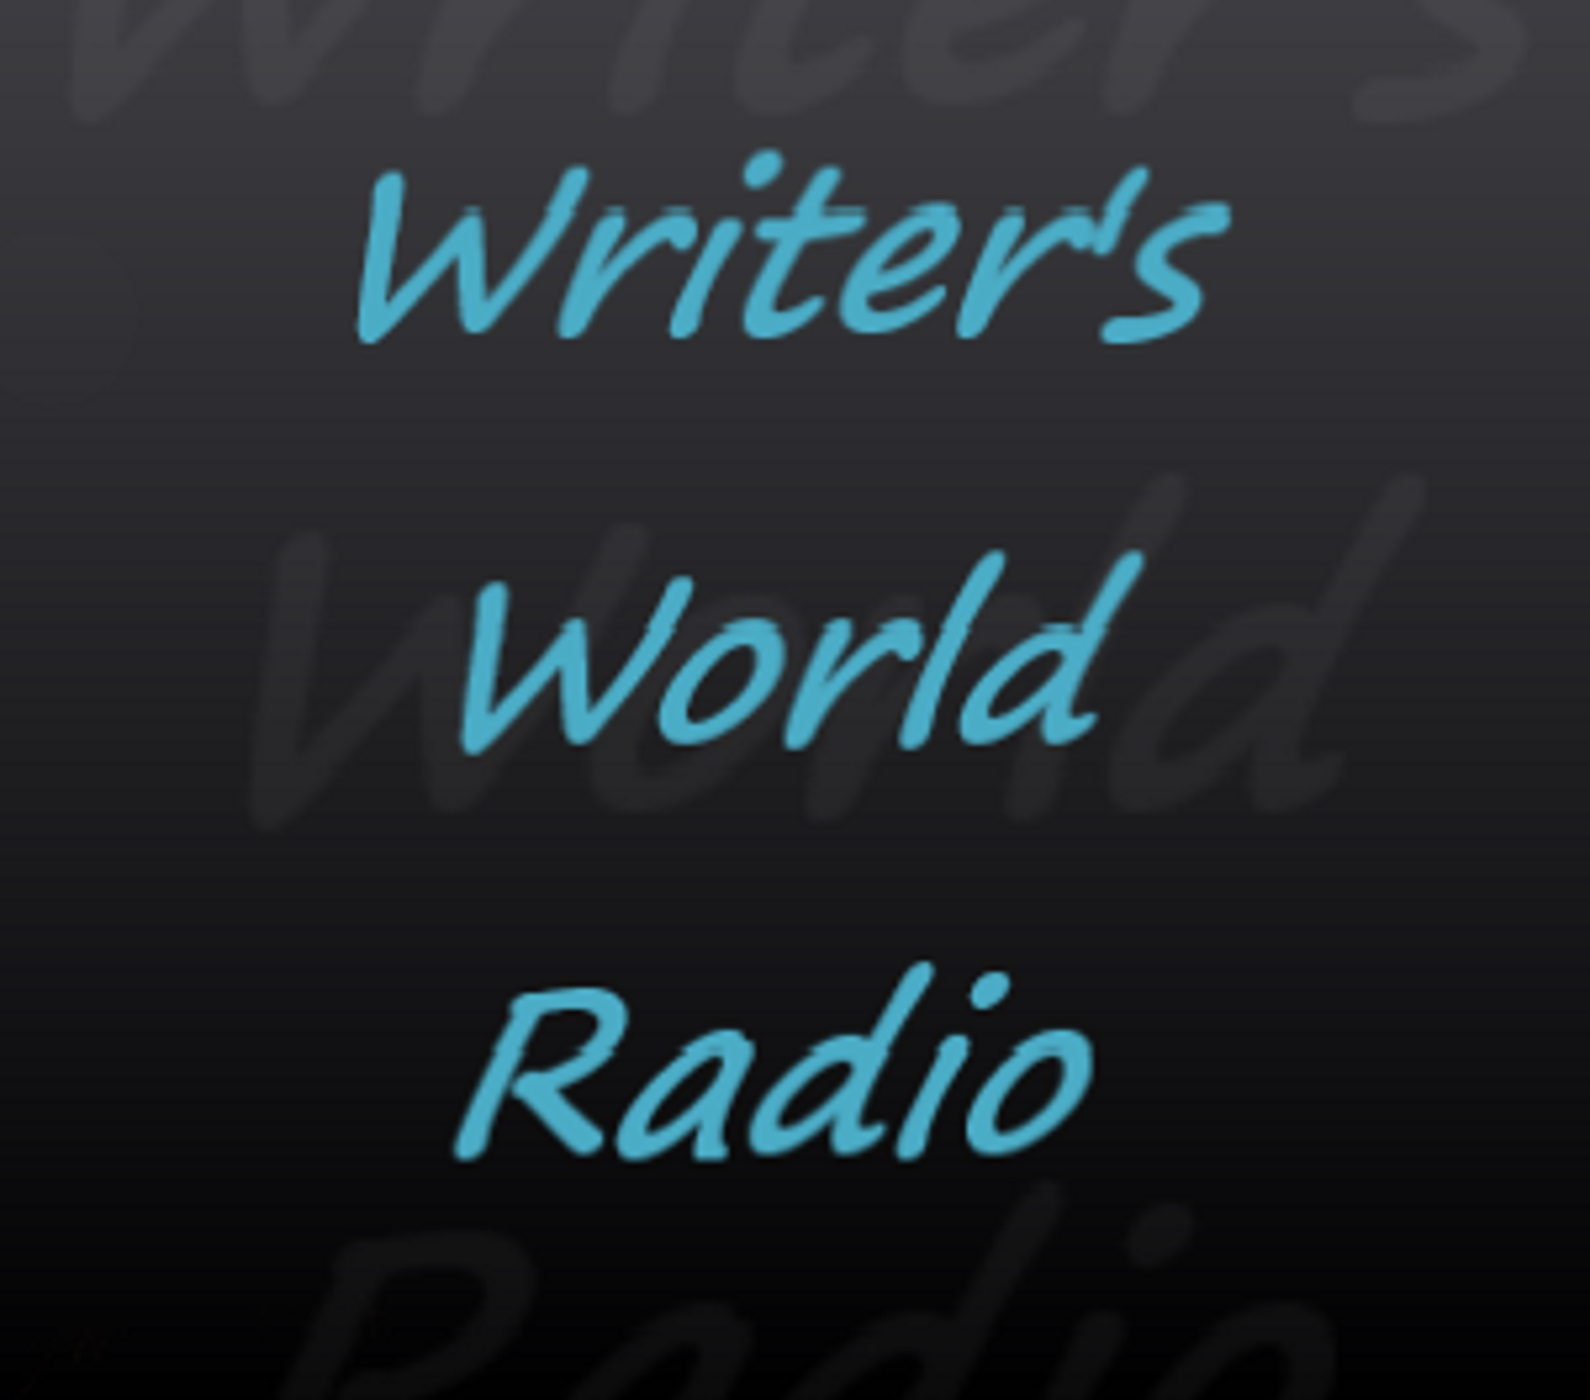 Writer's World Radio